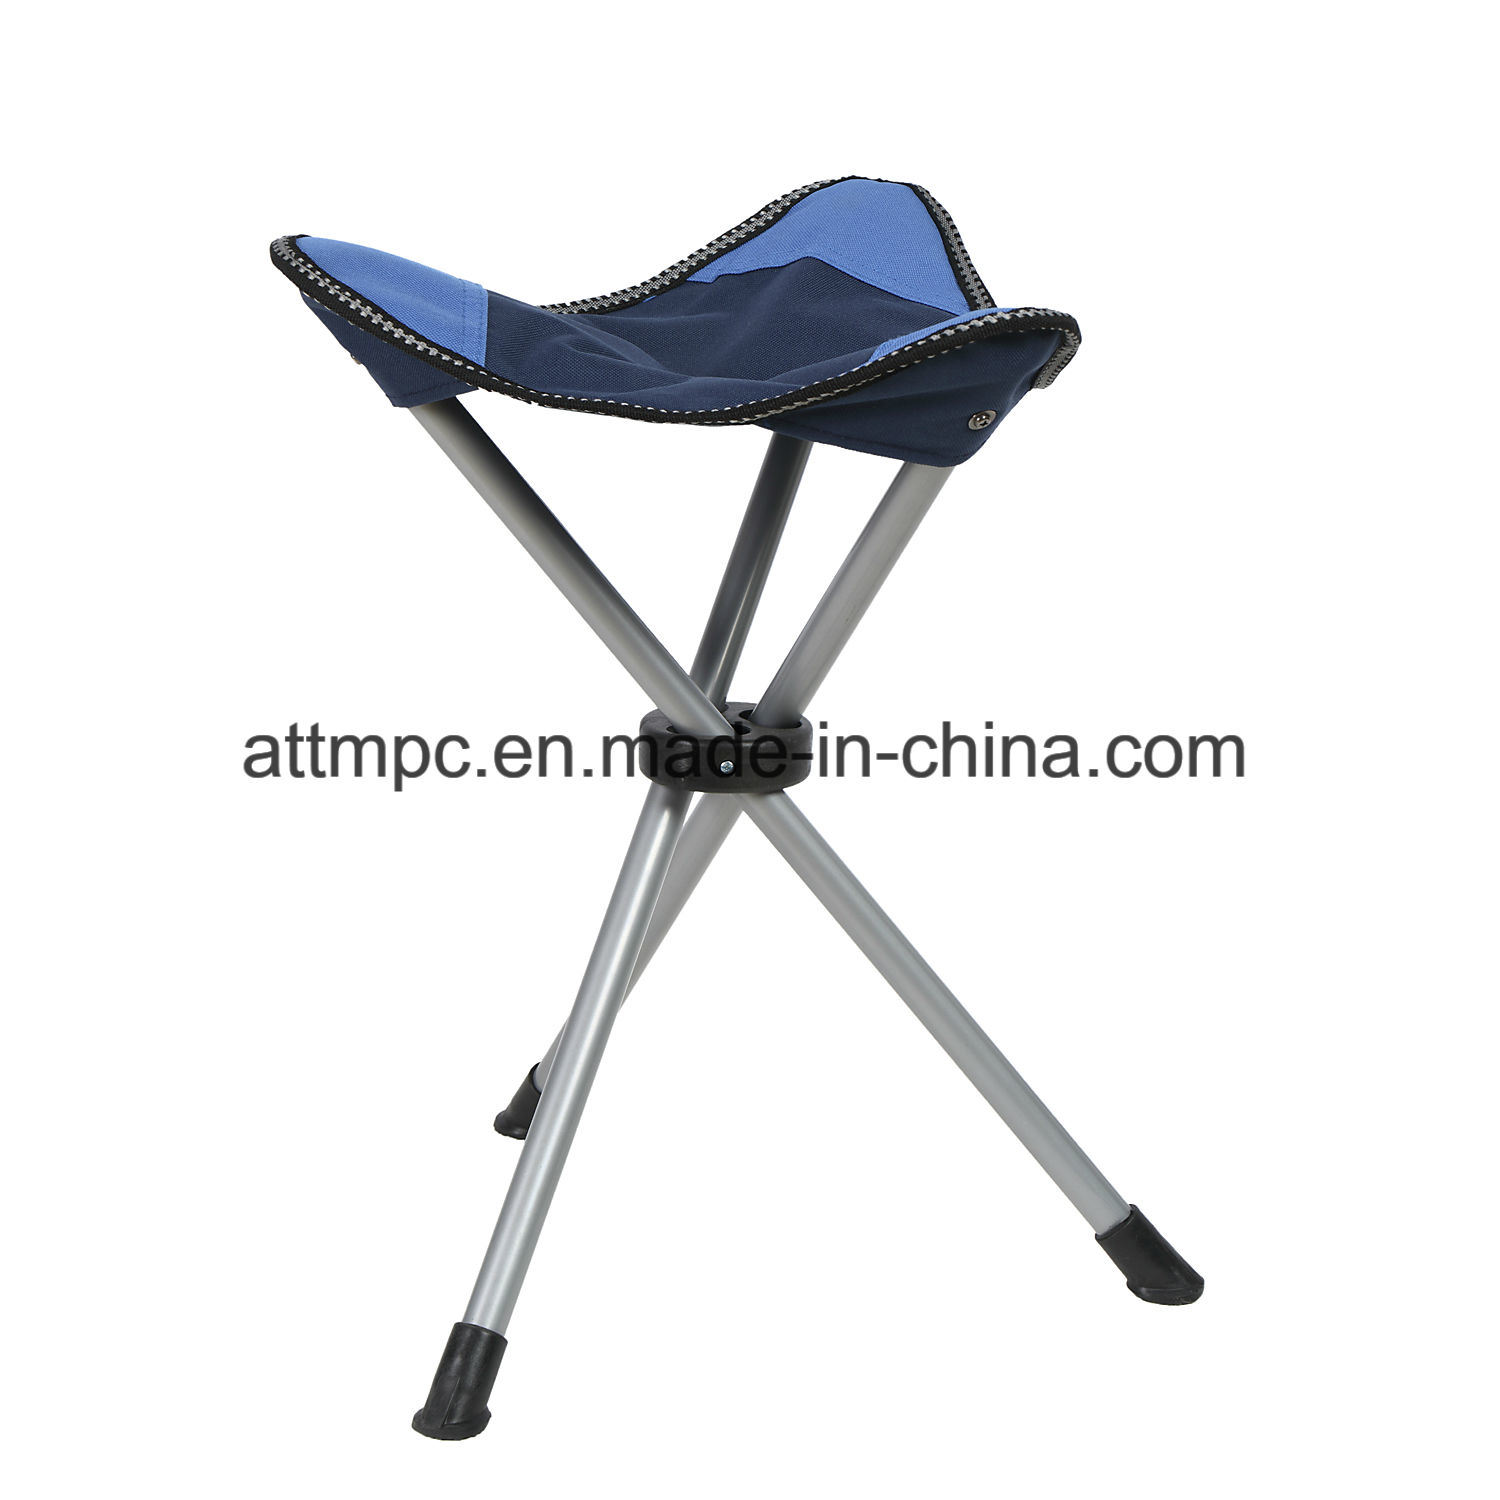 China outdoor folding camping triangle chairs for camping fishing beach picnic and leisure uses china folded chairs triangle stools